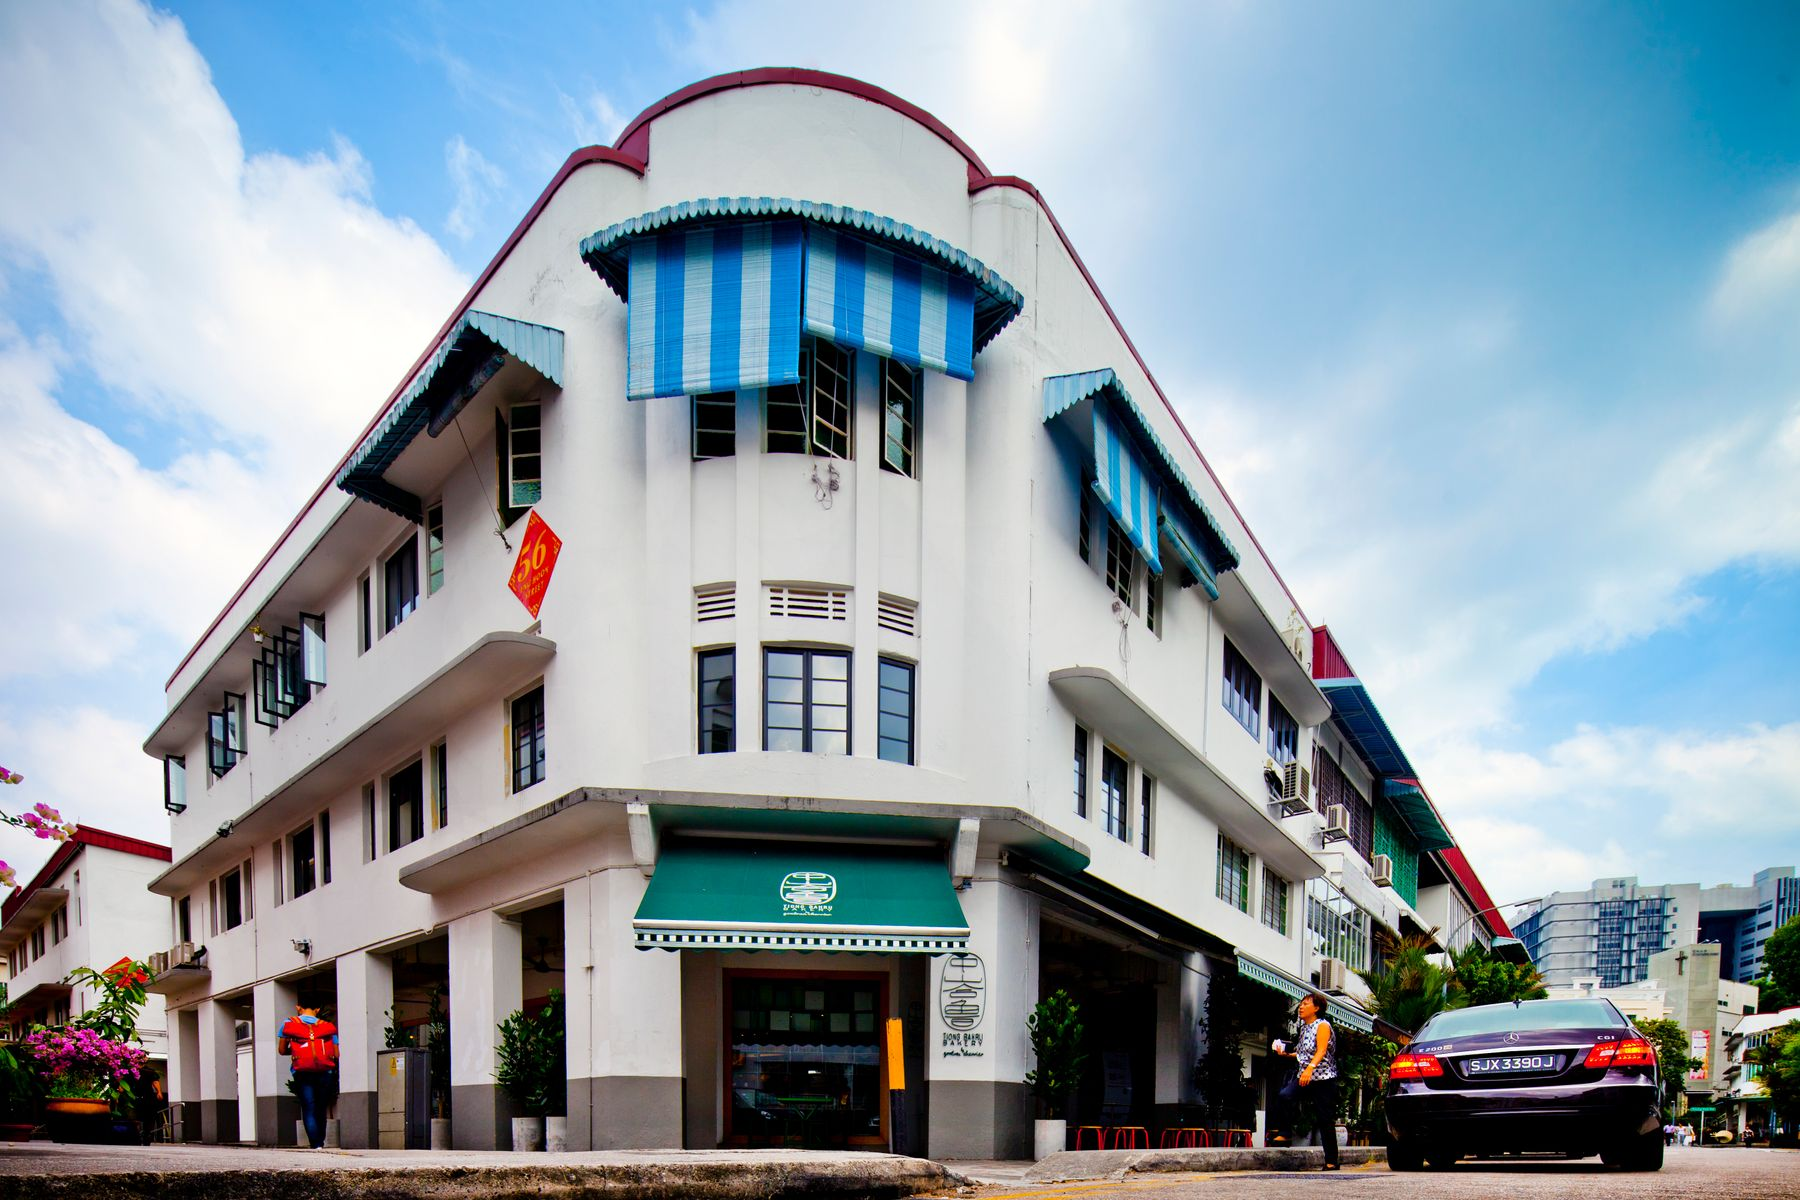 Corner building with car parked outside in Tiong Bahru neighbourhood, Singapore